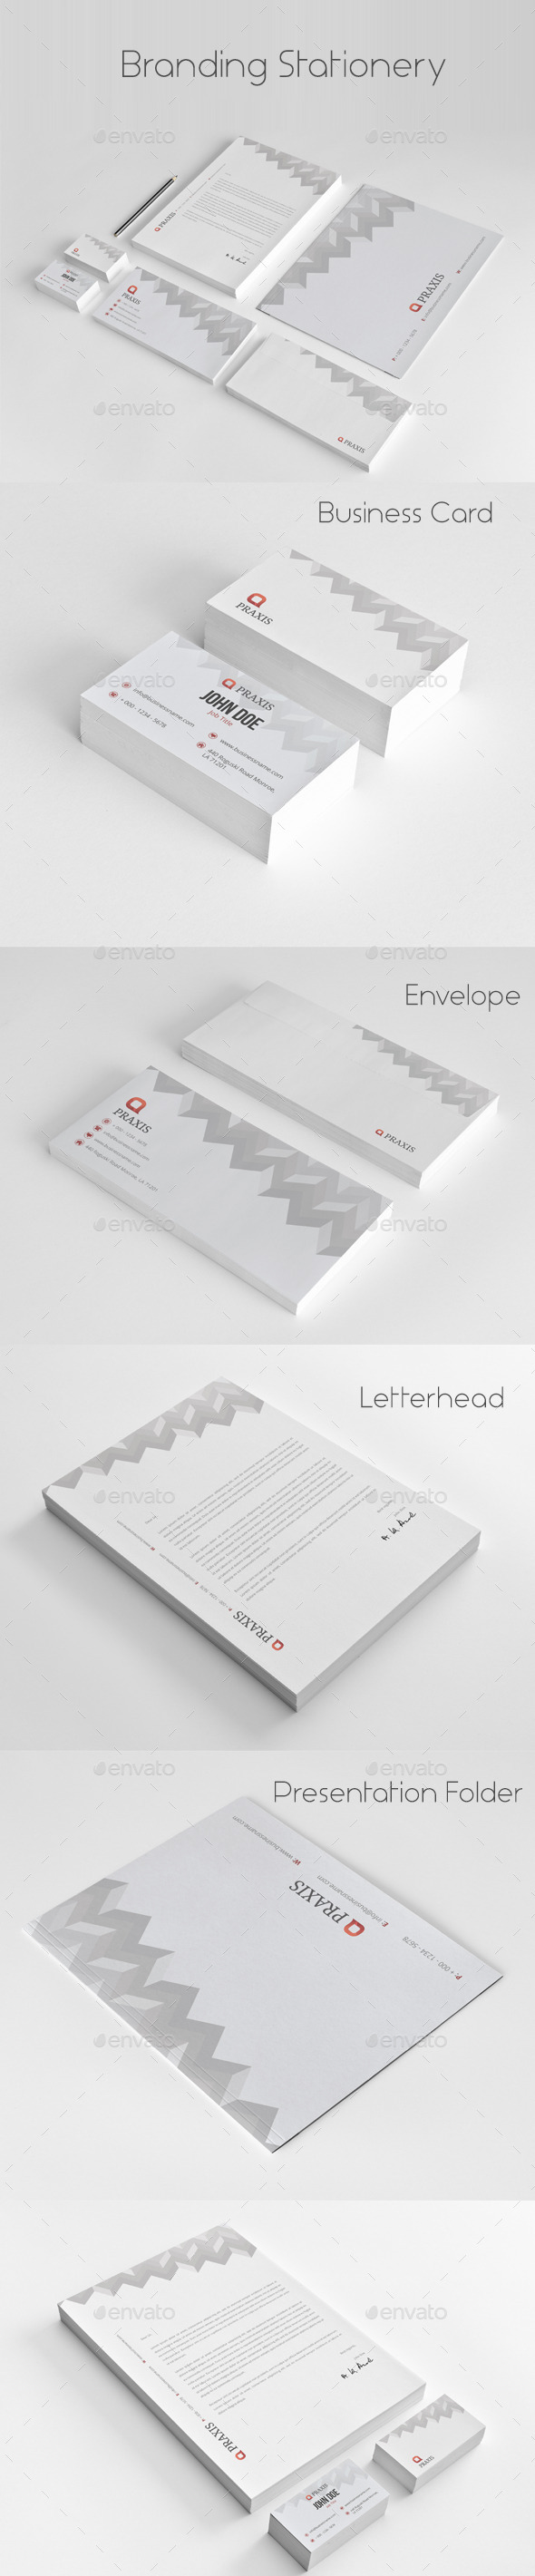 GraphicRiver Branding Stationery 11258209